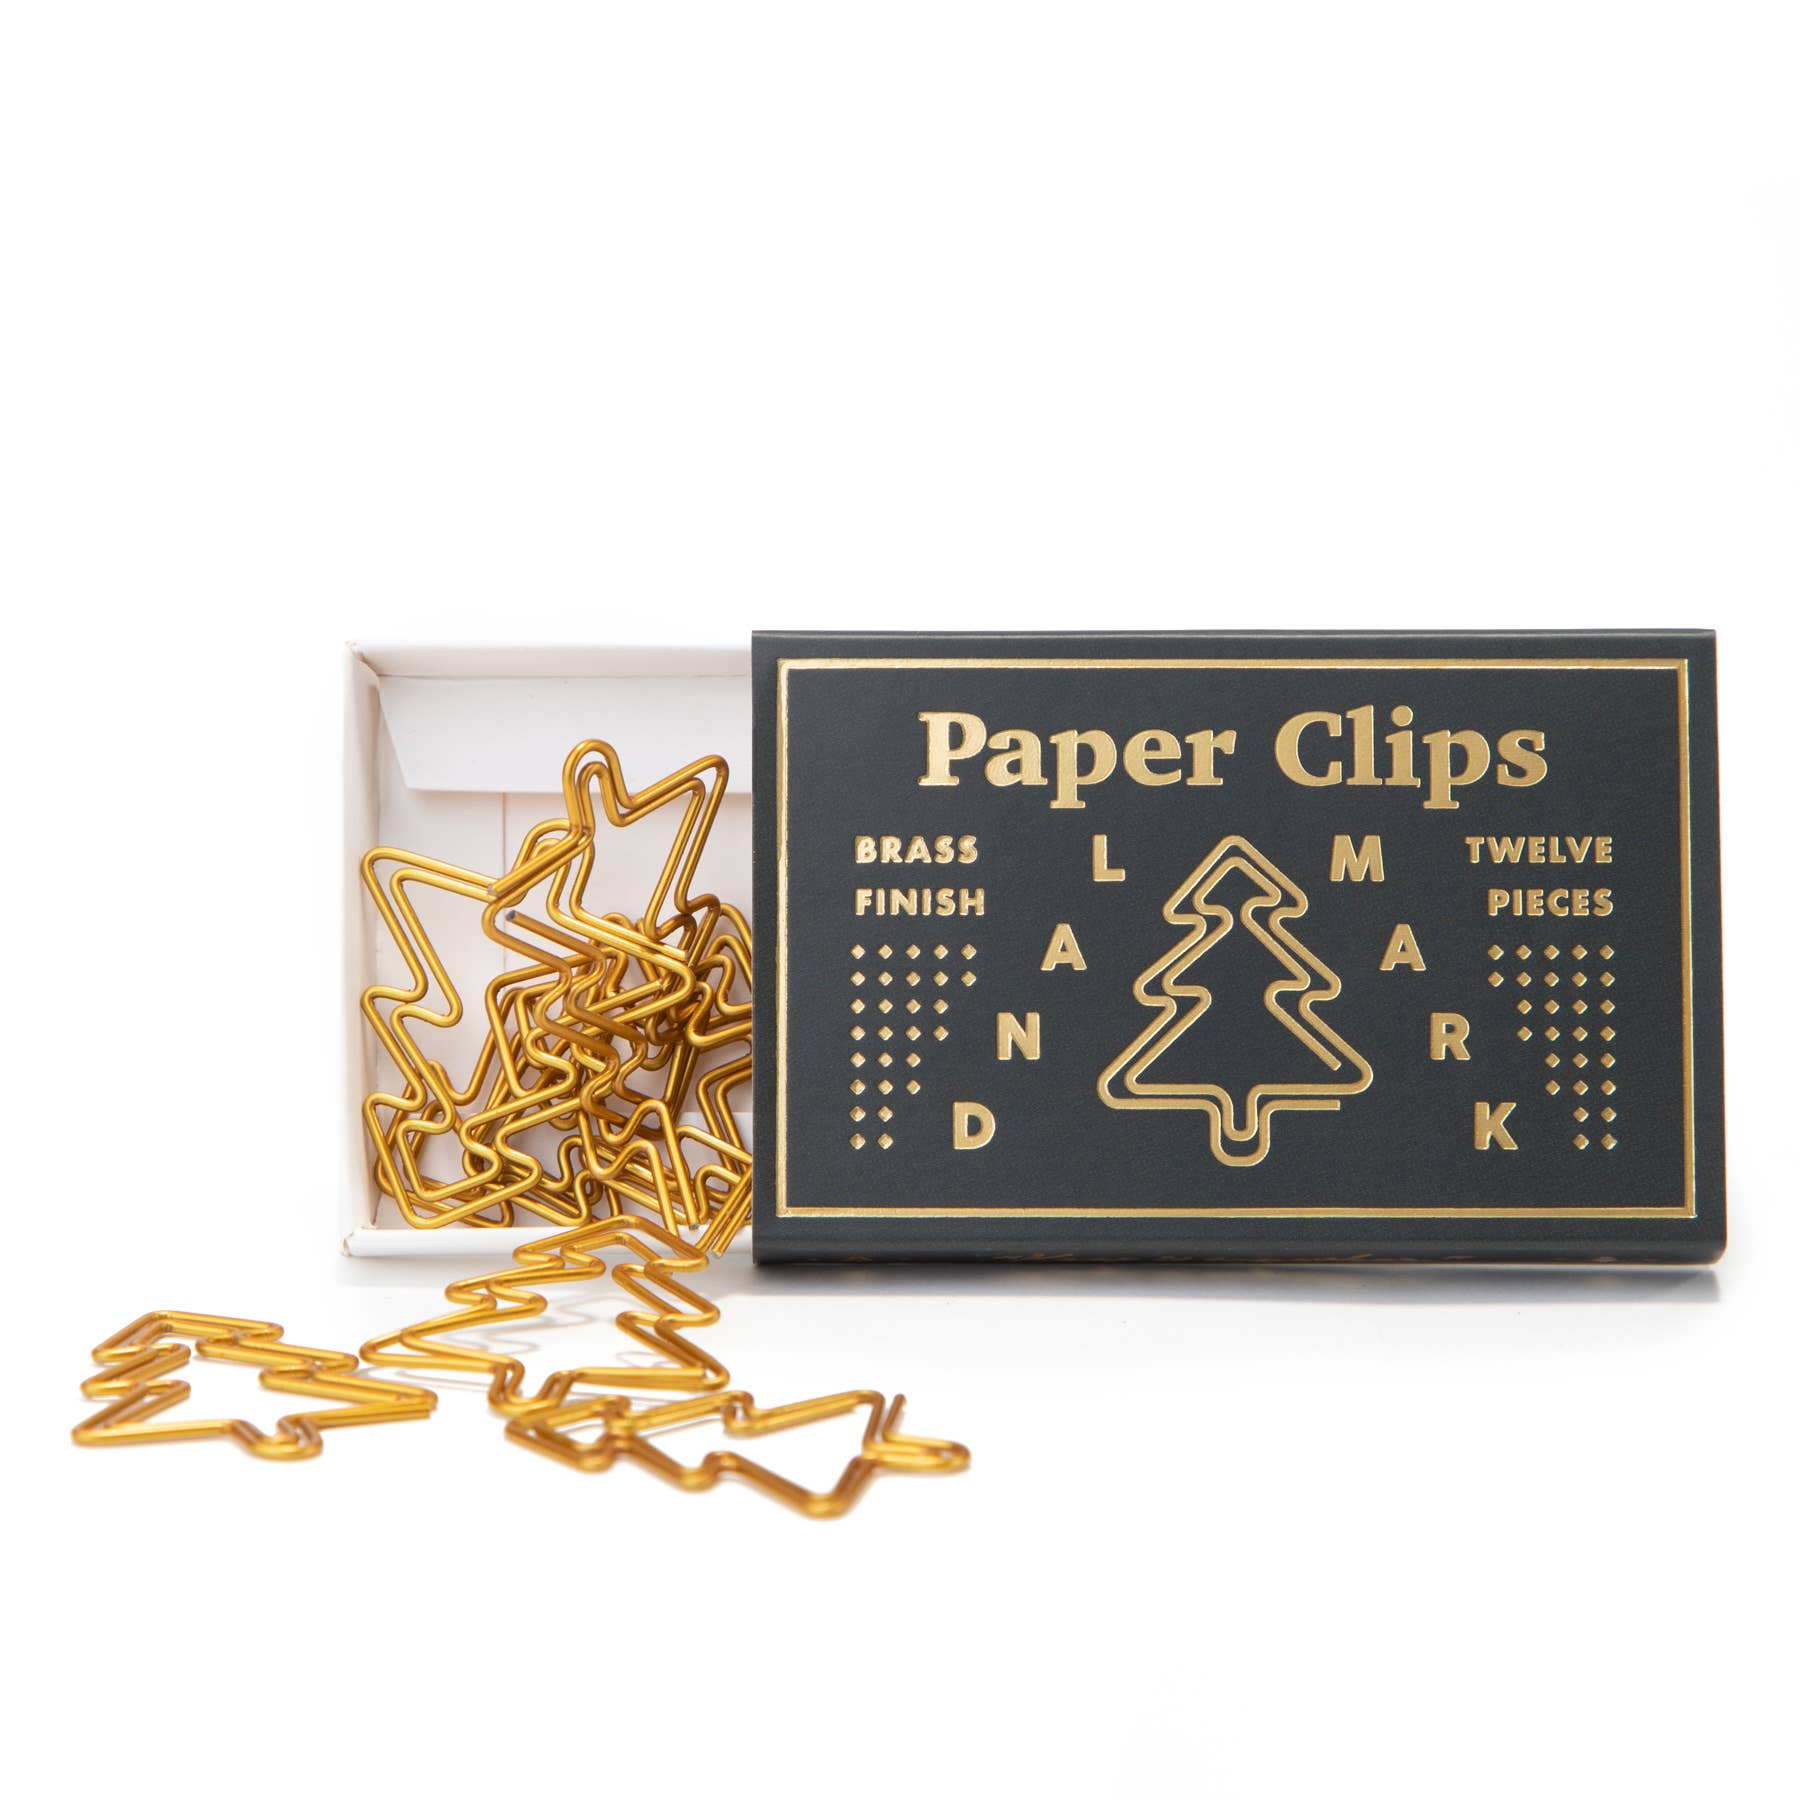 The Landmark Project Ponderosa Paper Clips